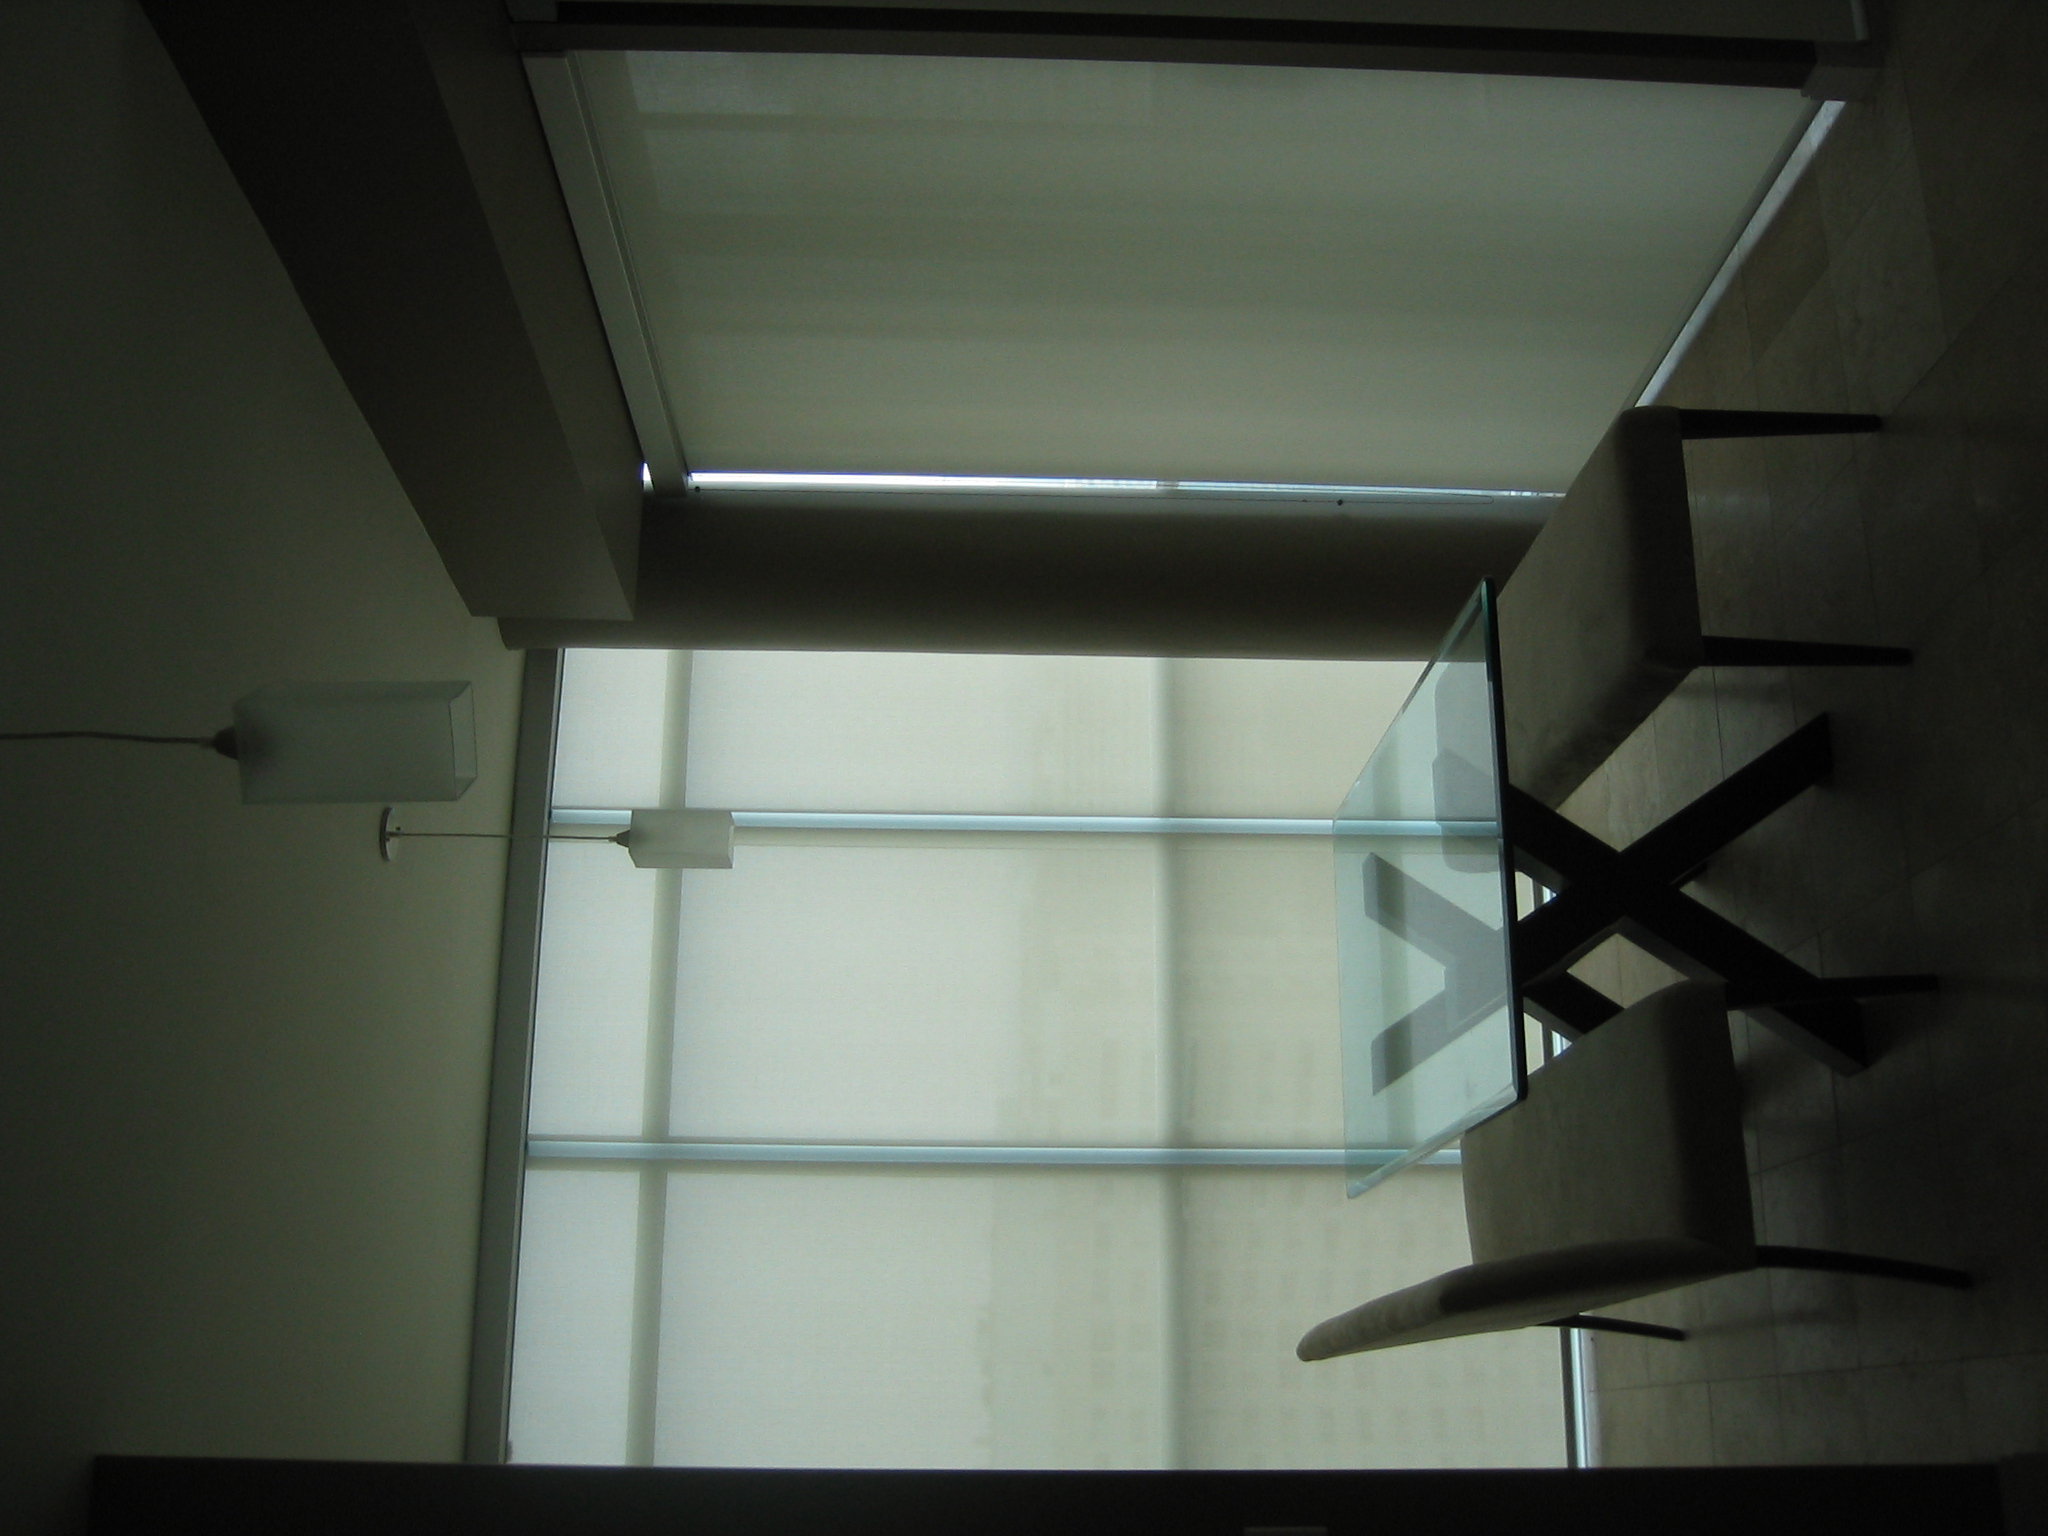 stairs glove white loft window commercial chic page service home blinds lifestyle